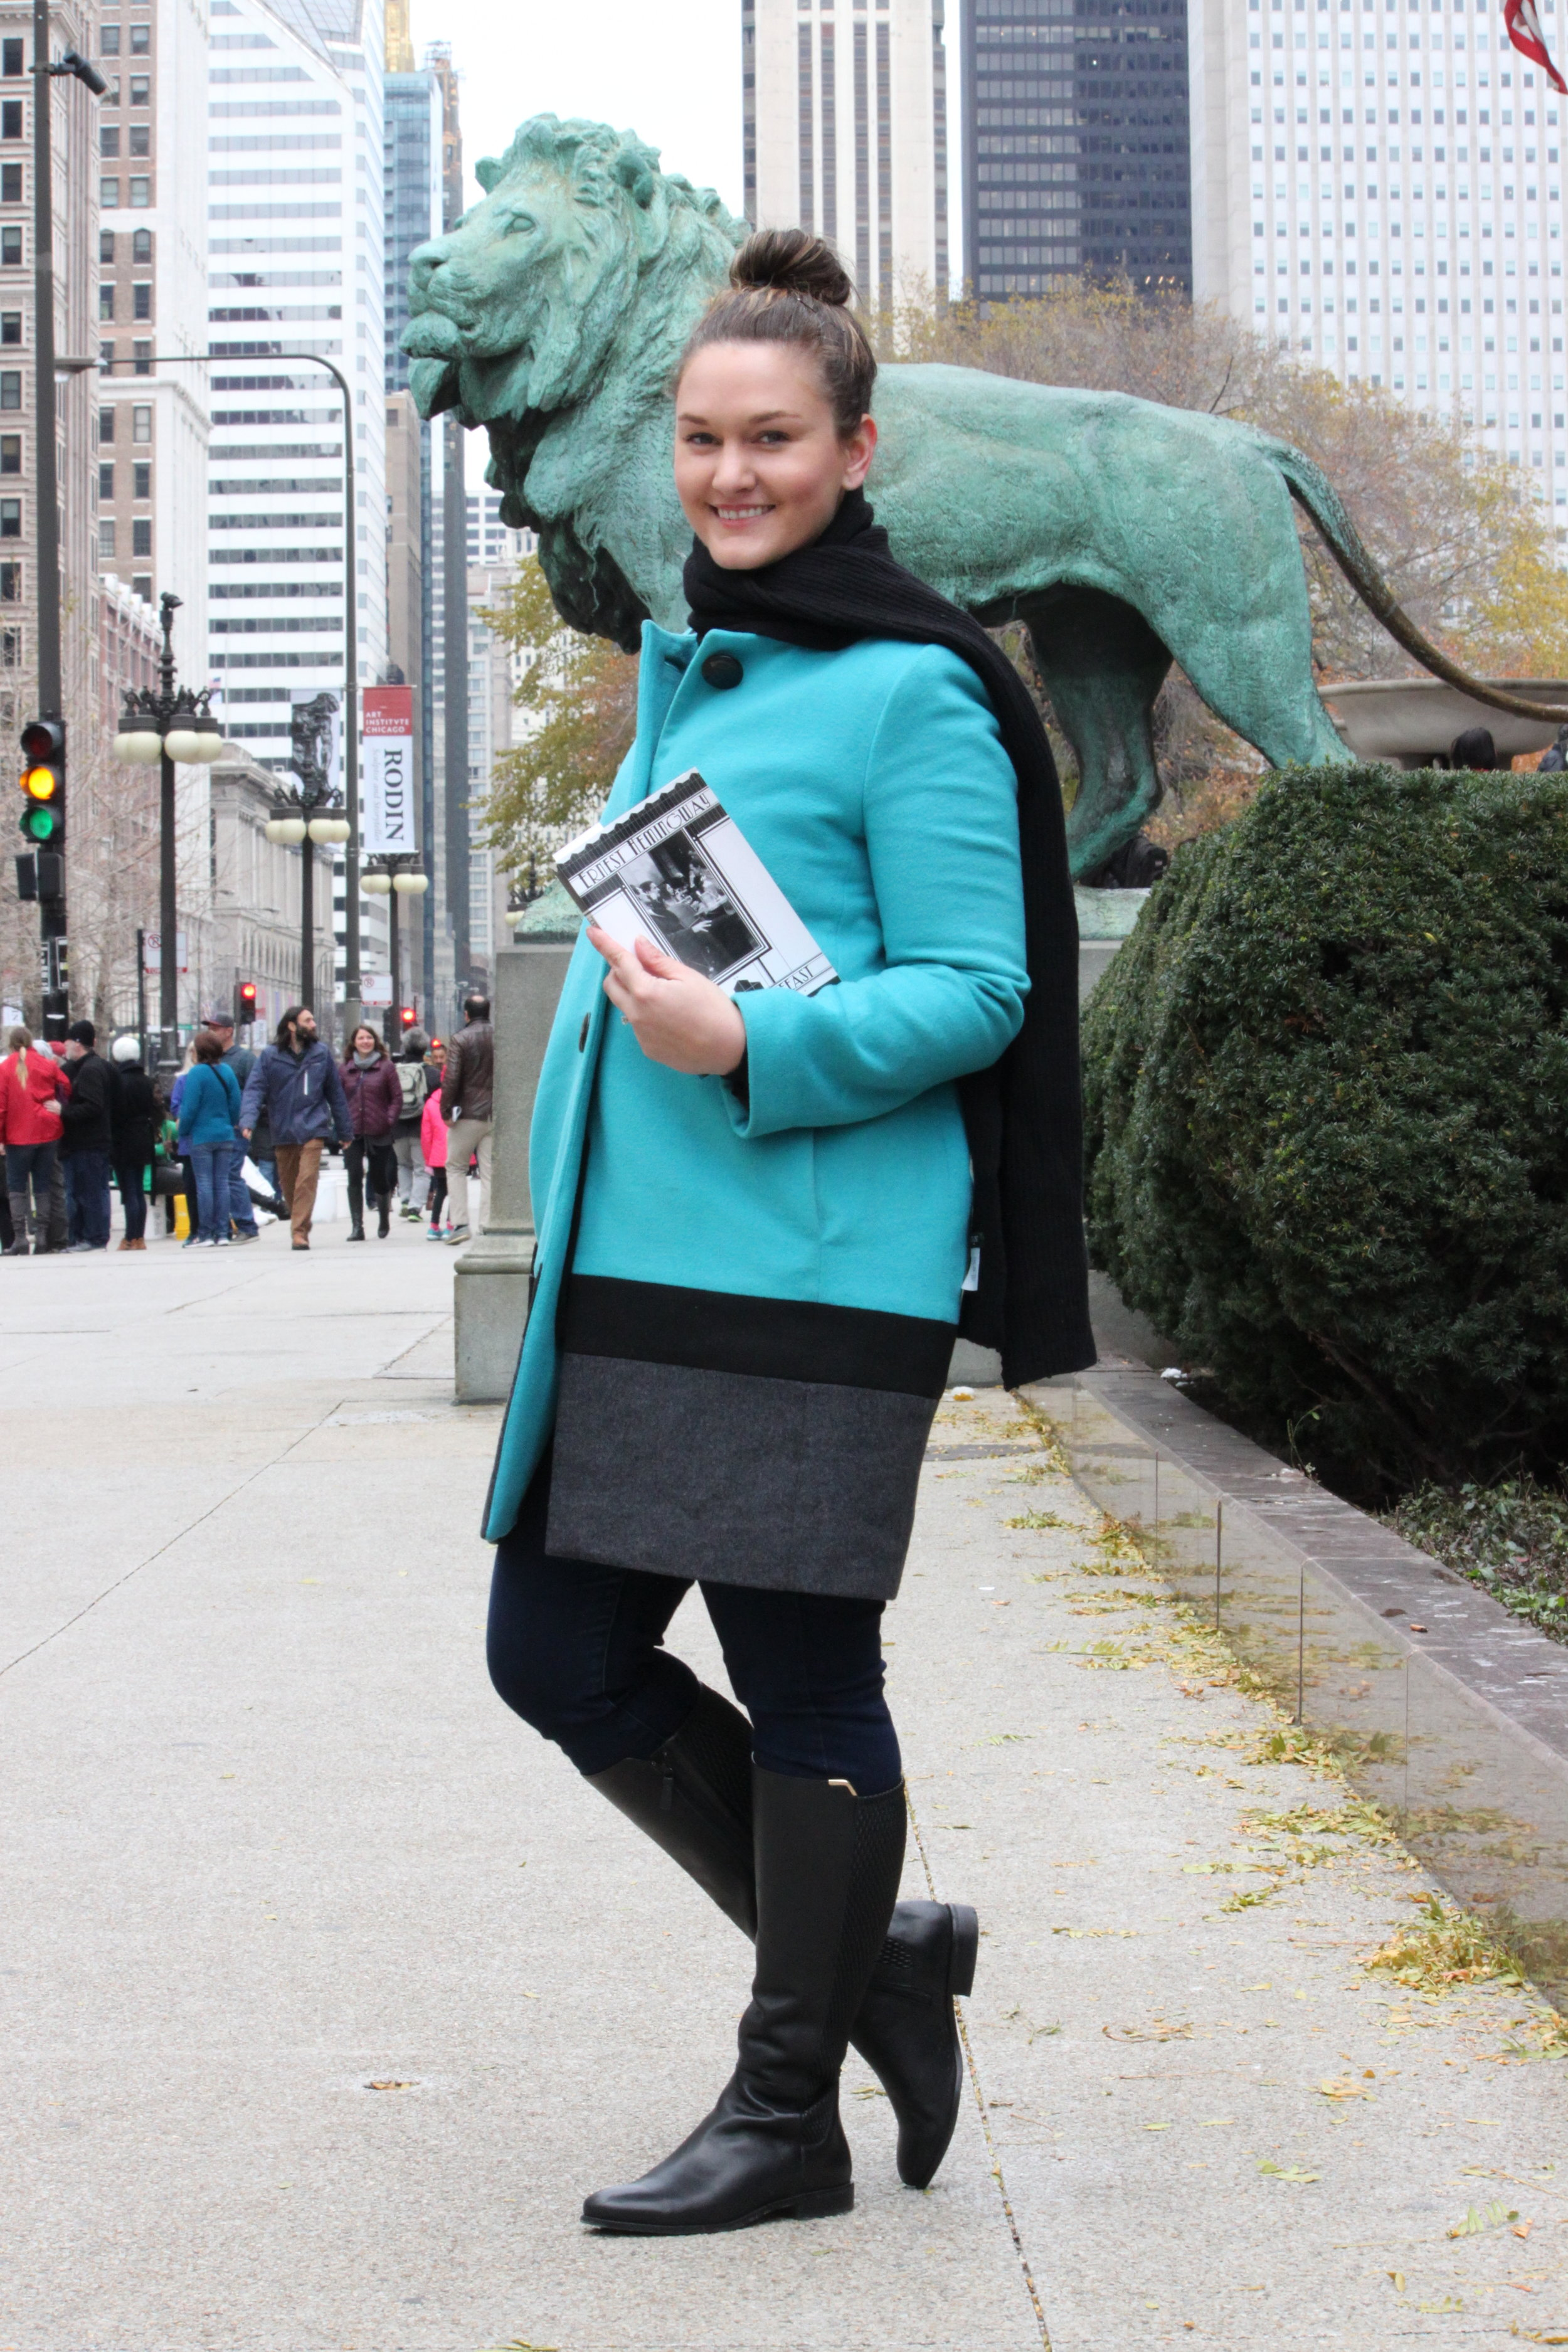 Reading A Moveable Feast by Ernest Hemingway at the Art Institute of Chicago